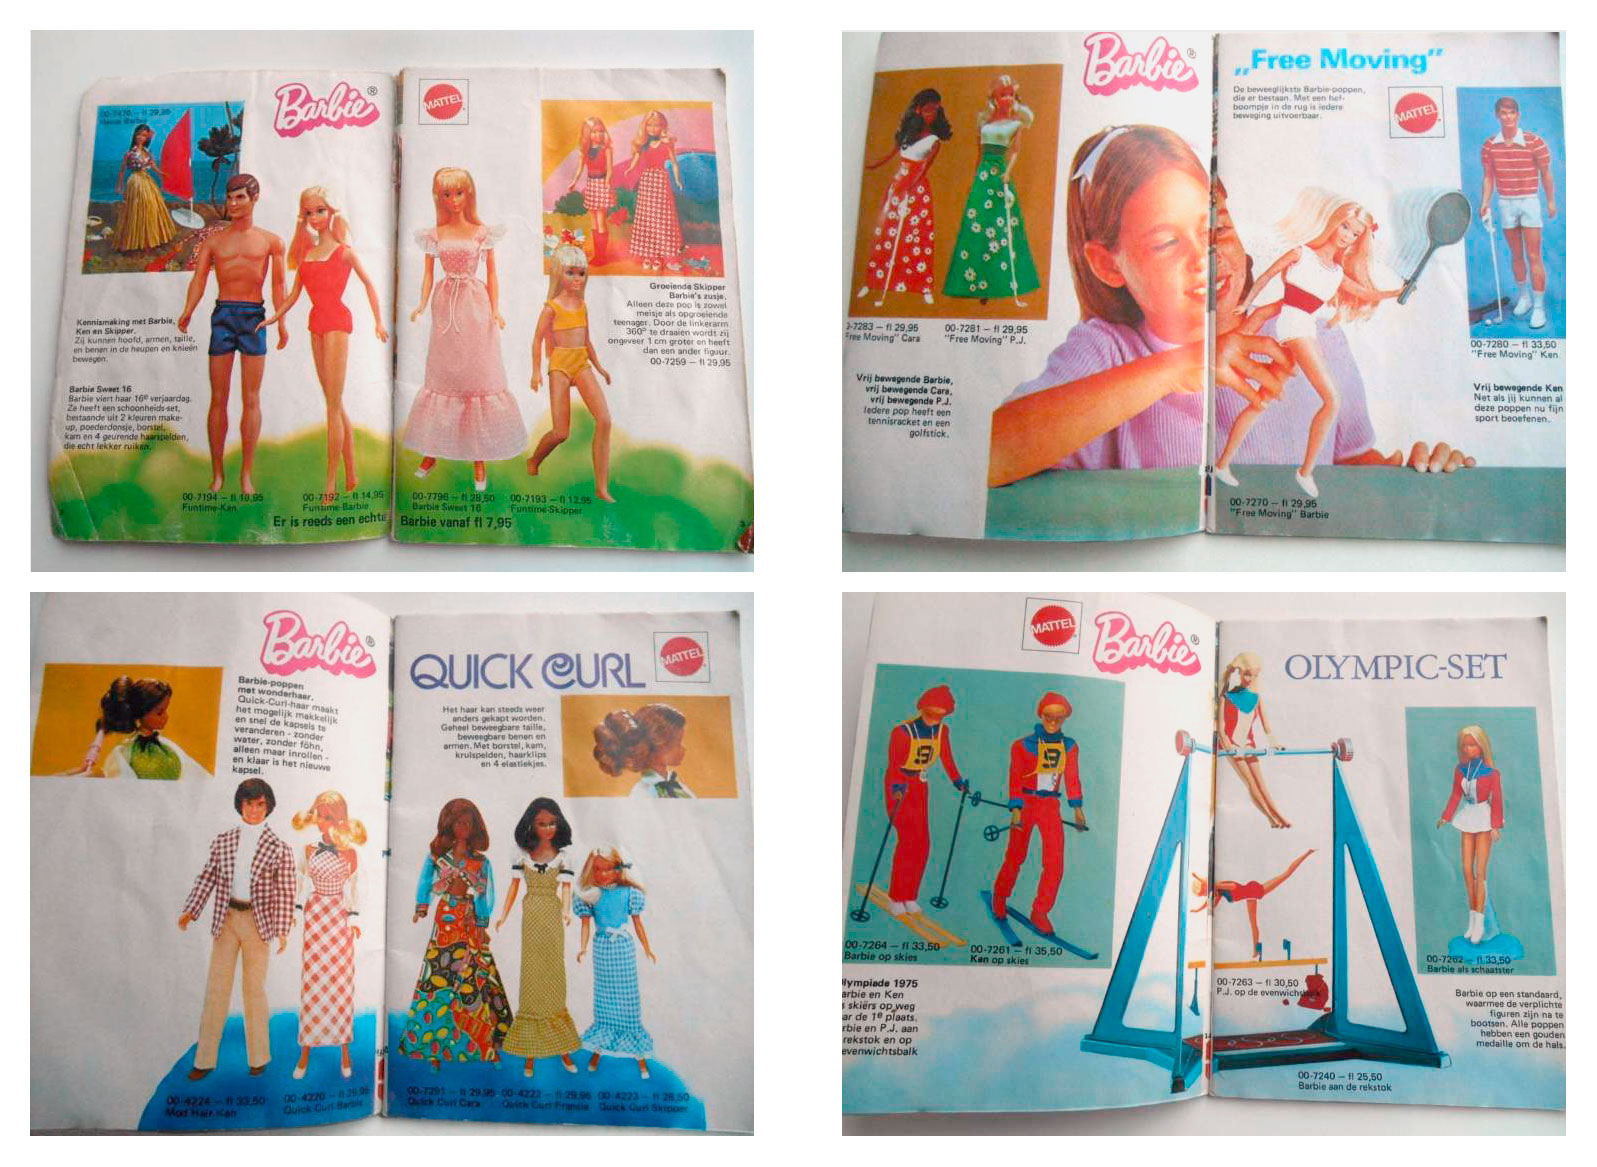 From 1975 Dutch Barbie booklet